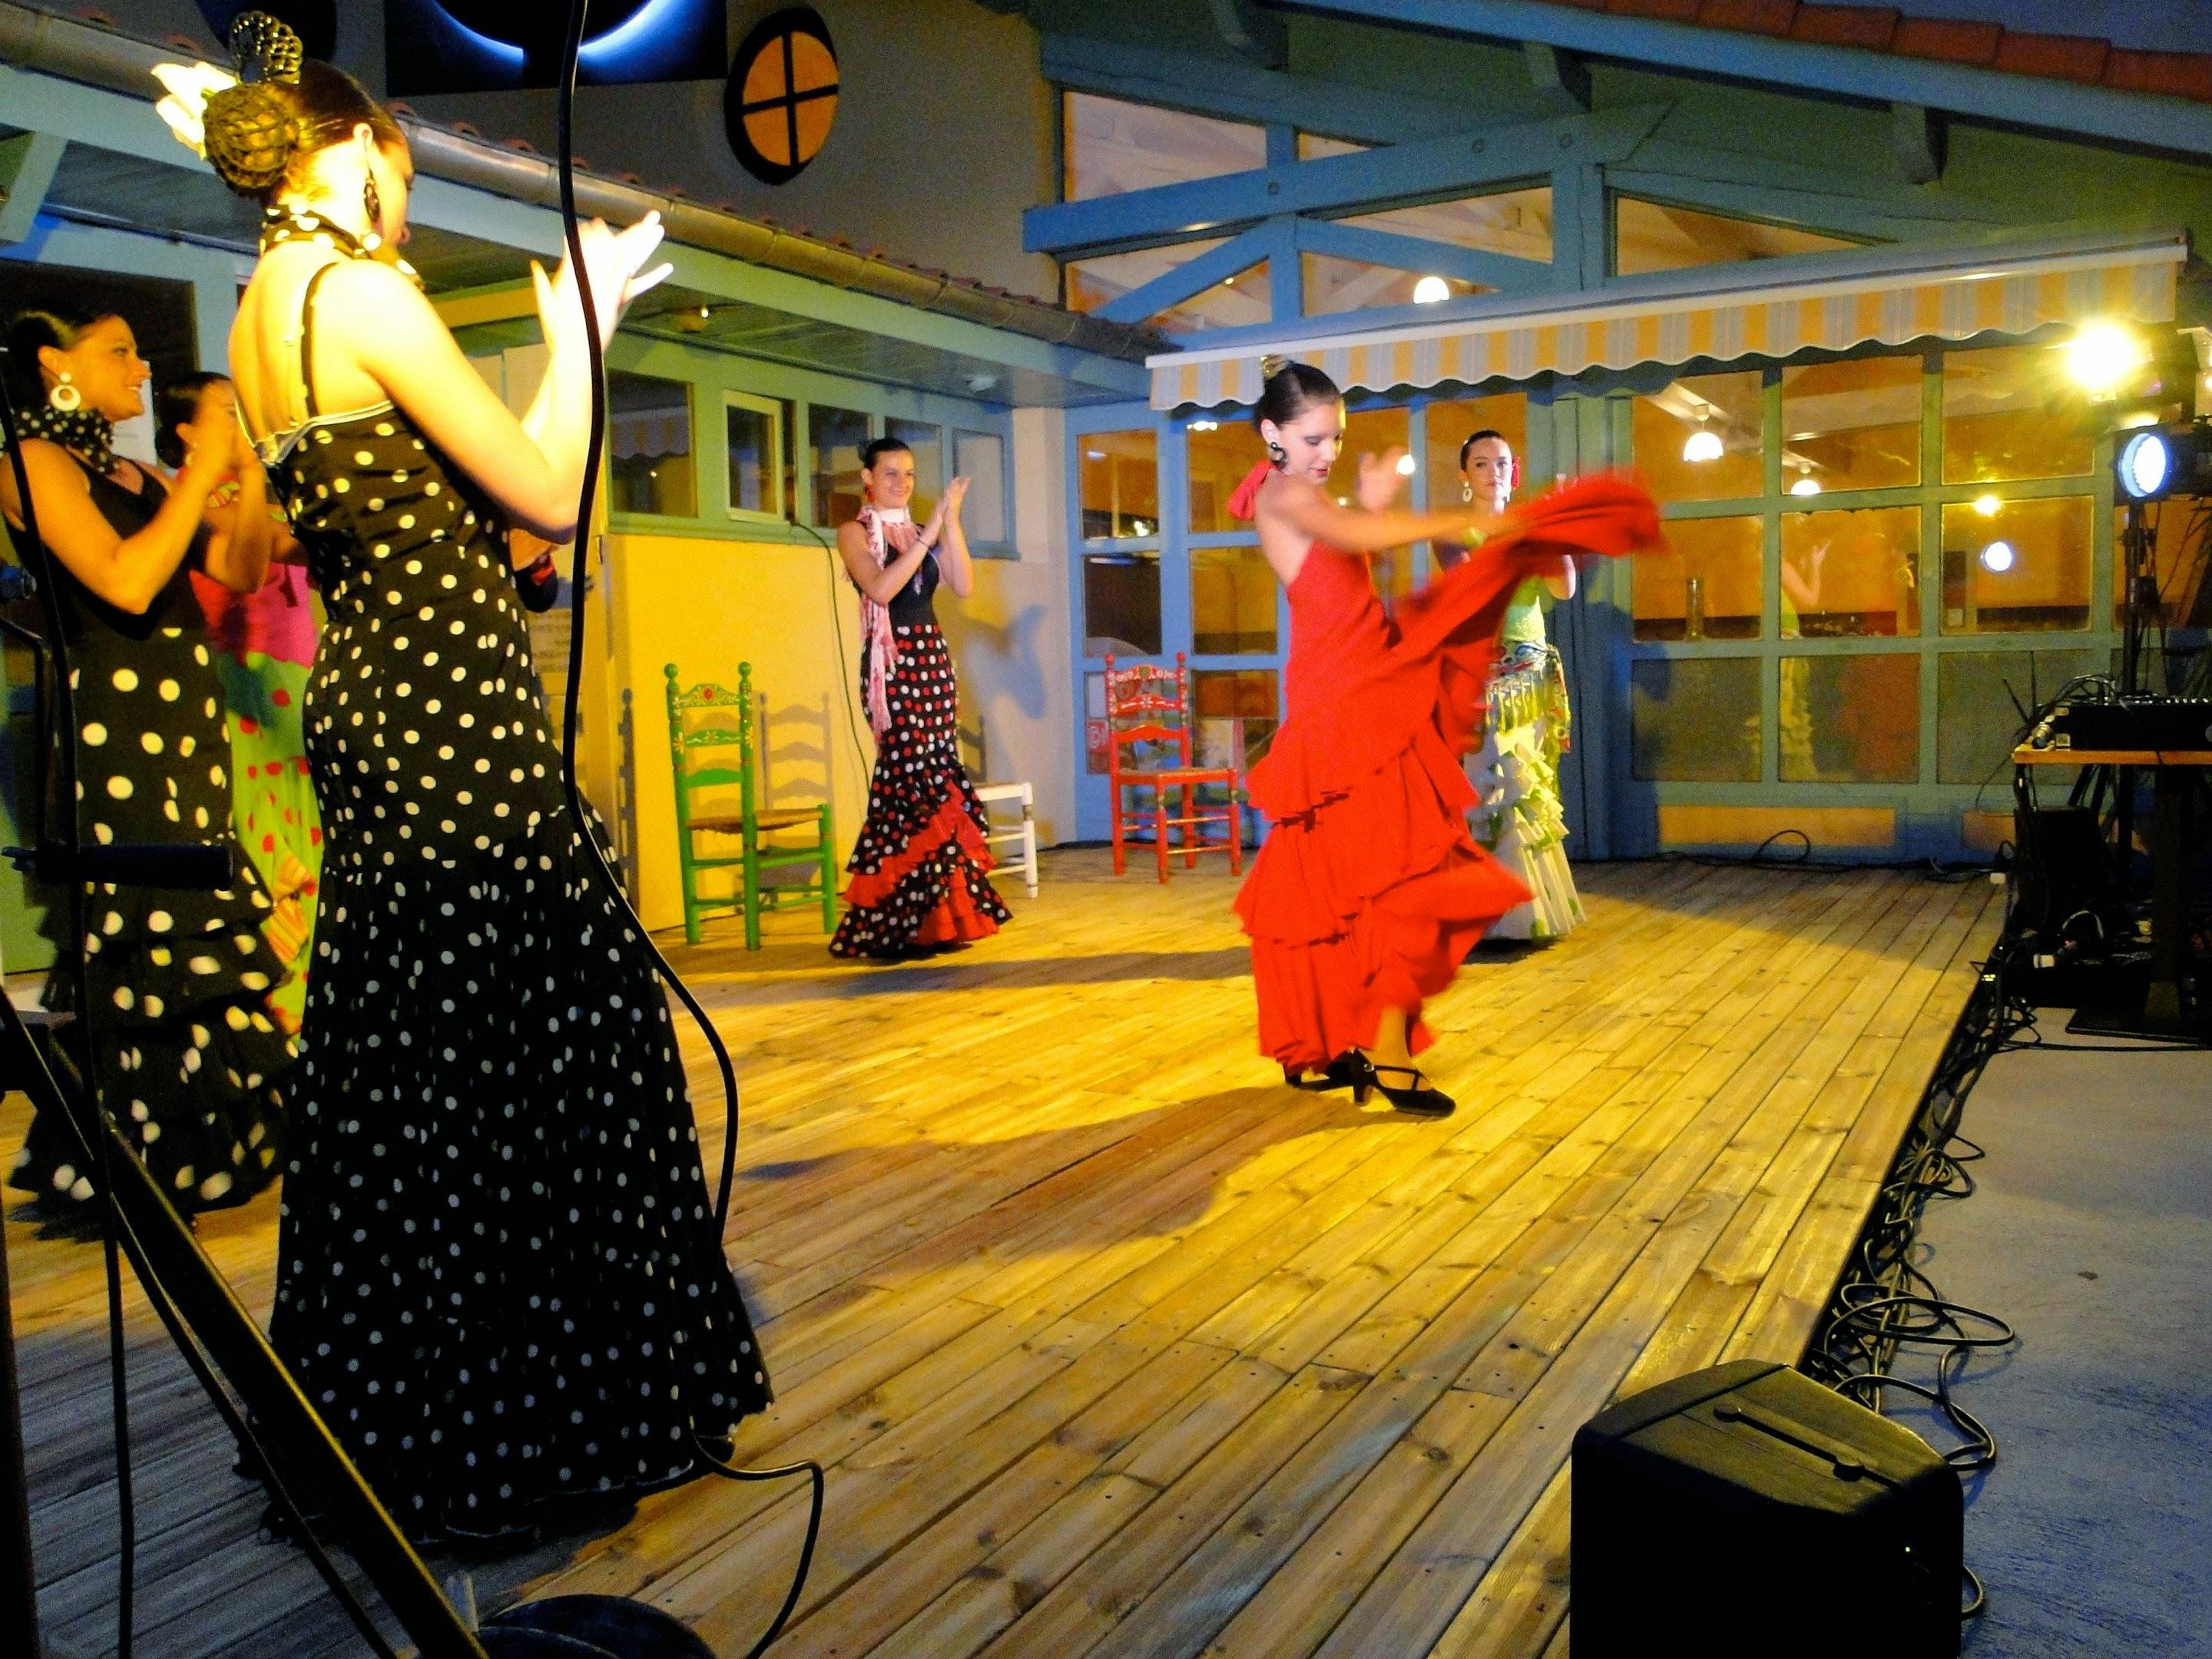 Entertainment organised Les Castels Whaka Lodge - Lifestyle Nature Camp - Seissan